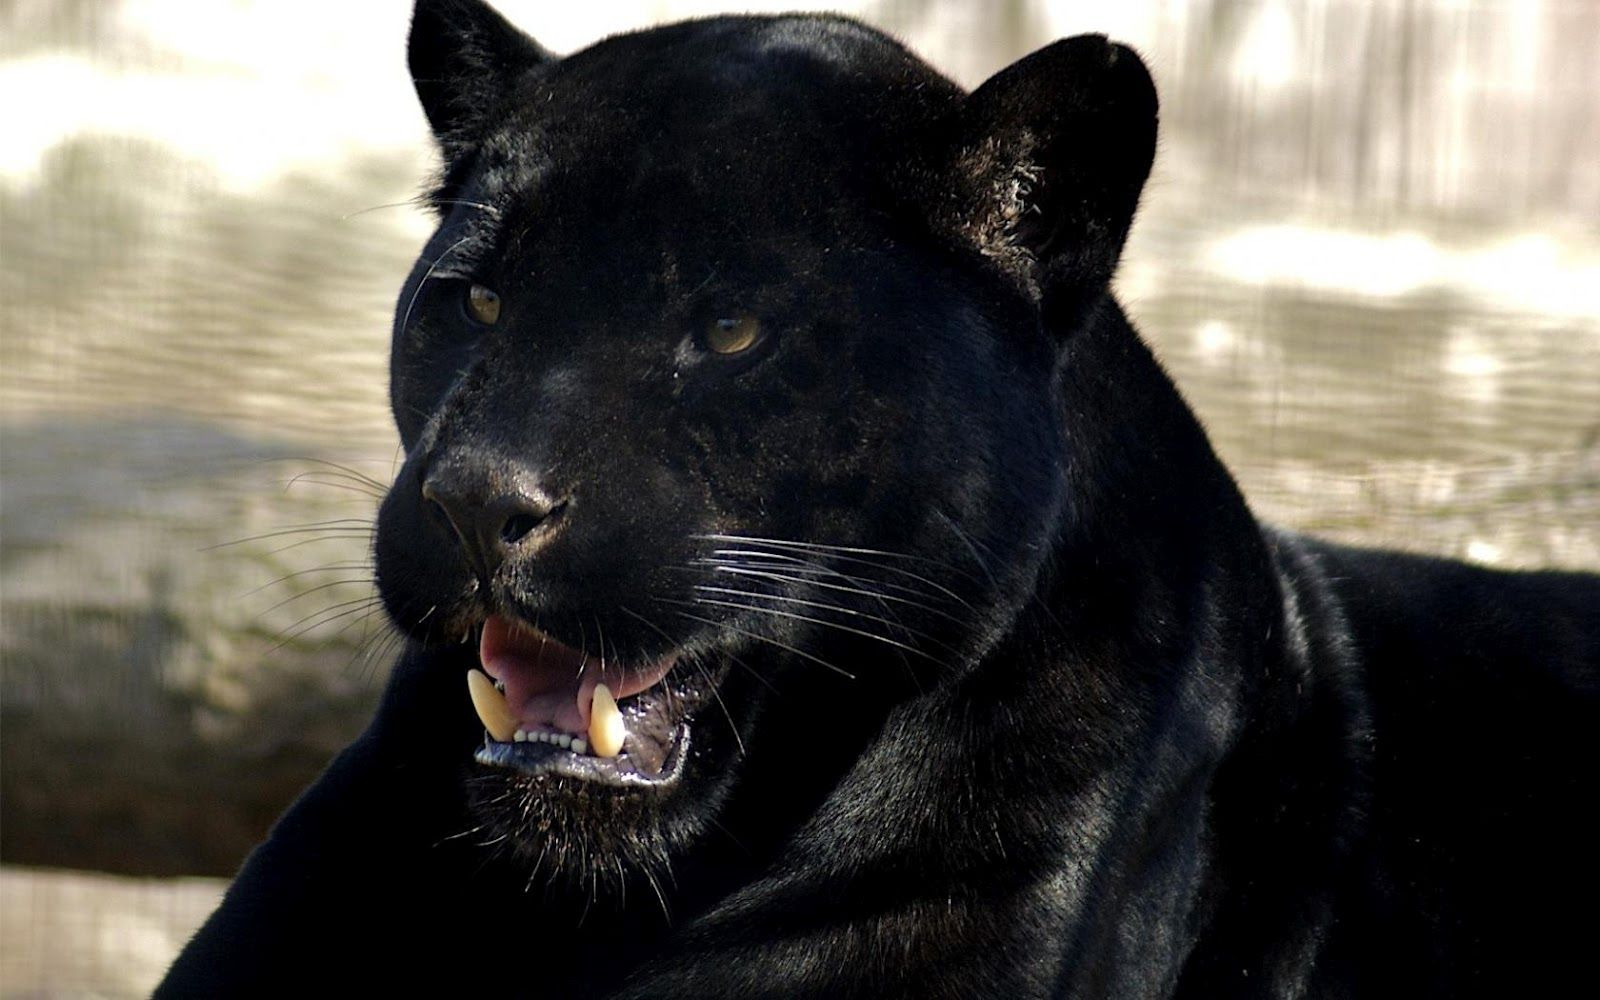 Black Leopard Black Panther Sharp Teeth Hd Desktop Wallpaper Diy